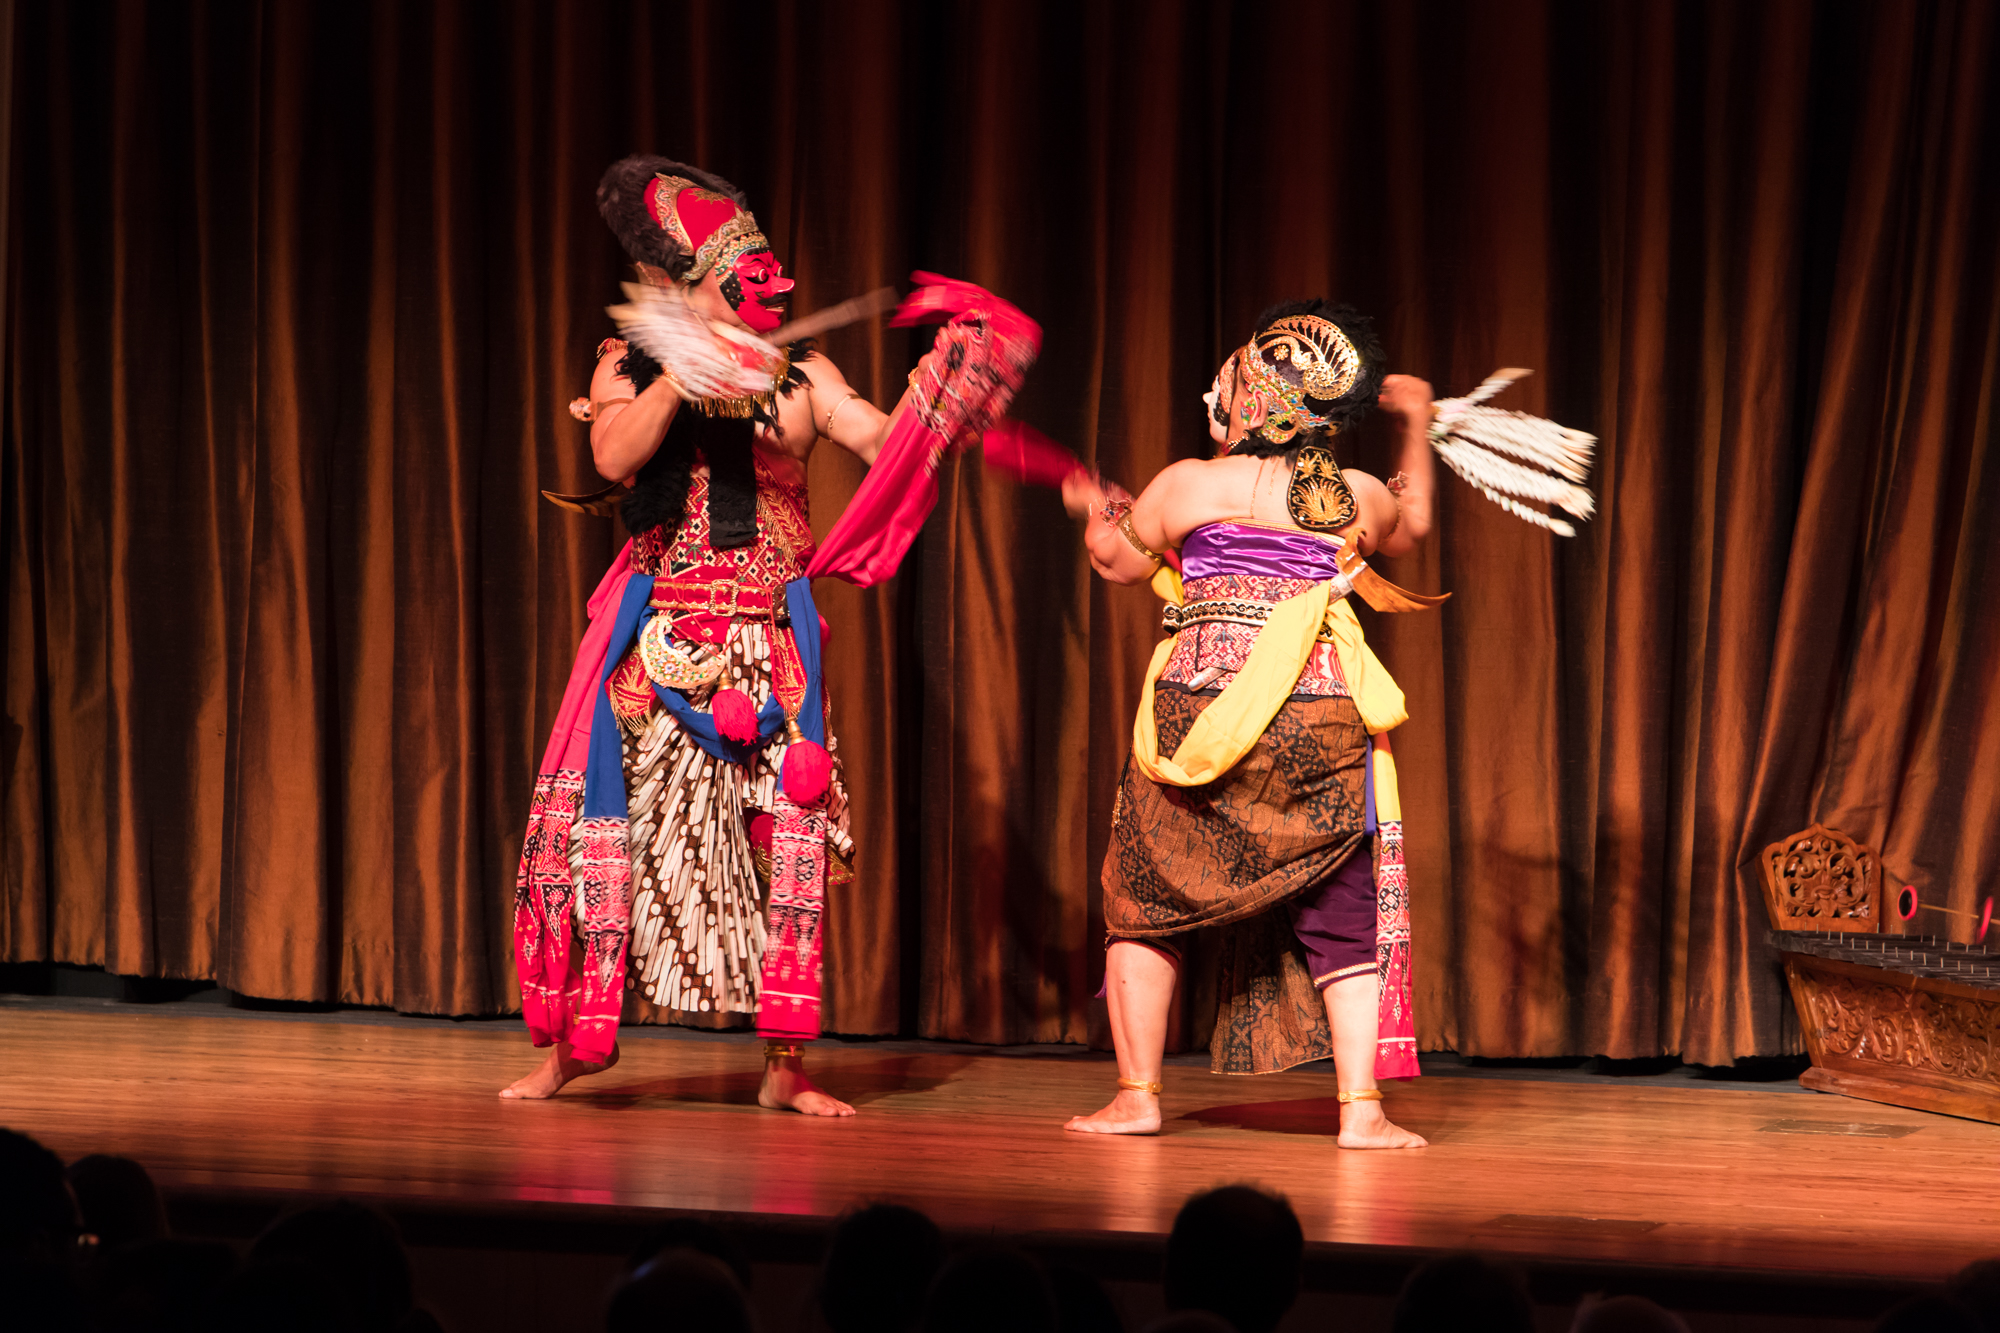 Dance From Indonesia Classical And Contemporary Freer Gallery Of Art Arthur M Sackler Gallery